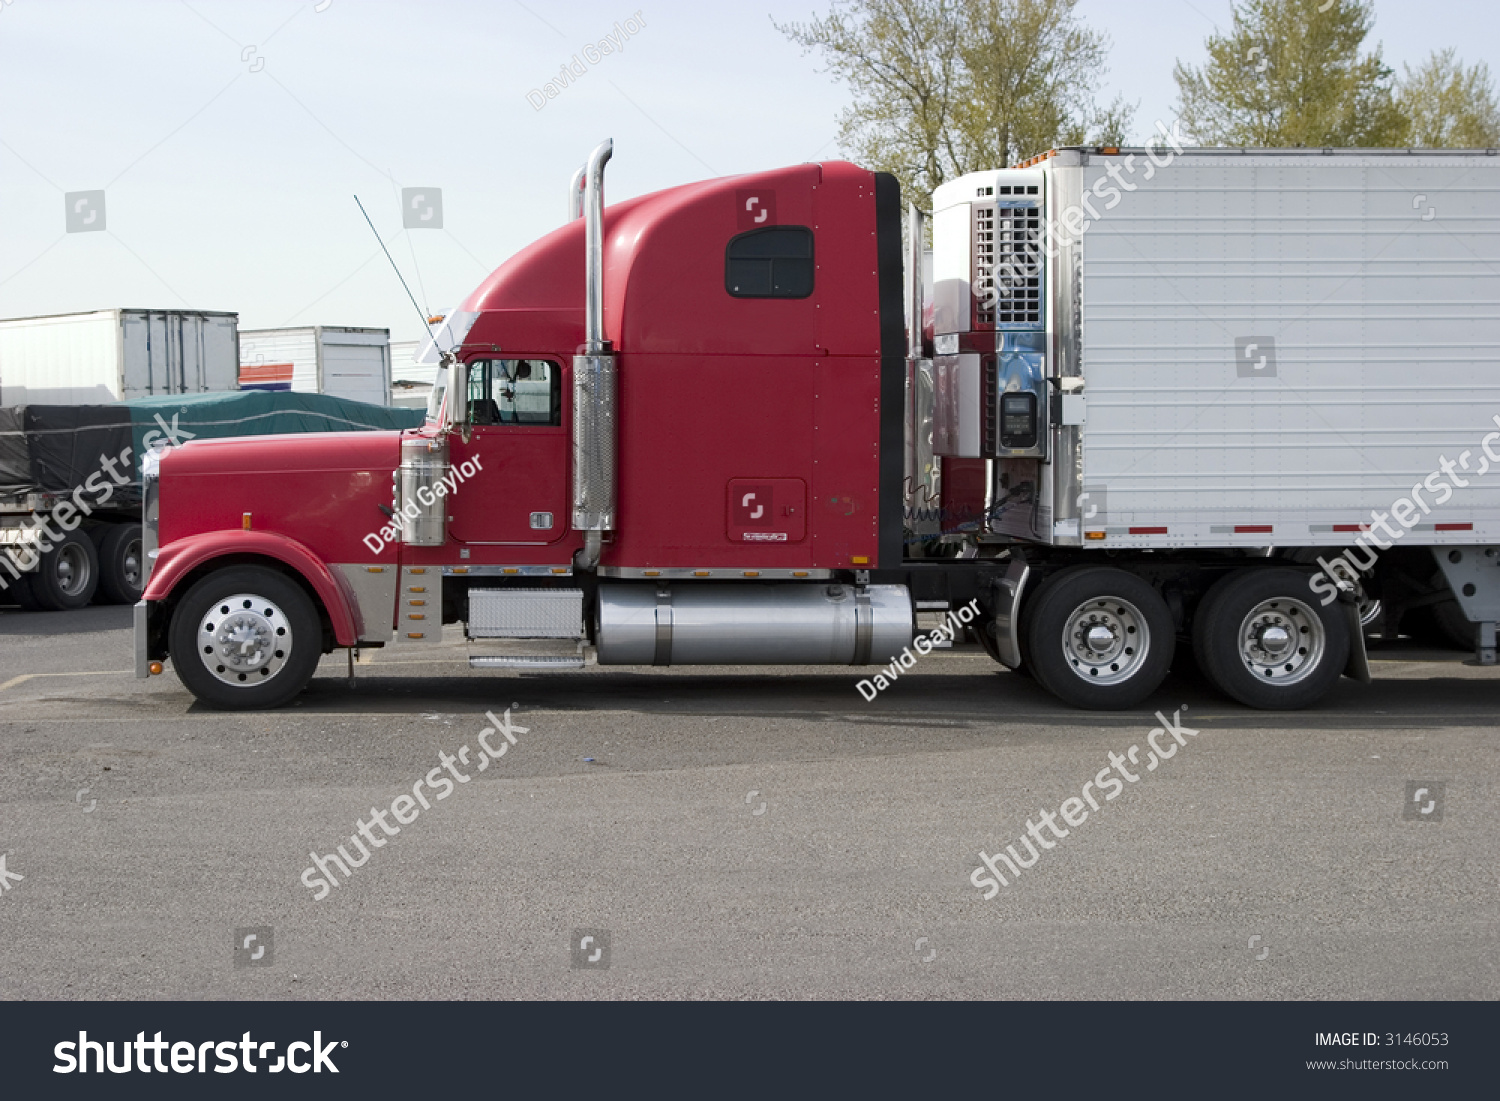 Tractor Trailer Stock : Tractor trailer refrigerated stock photo